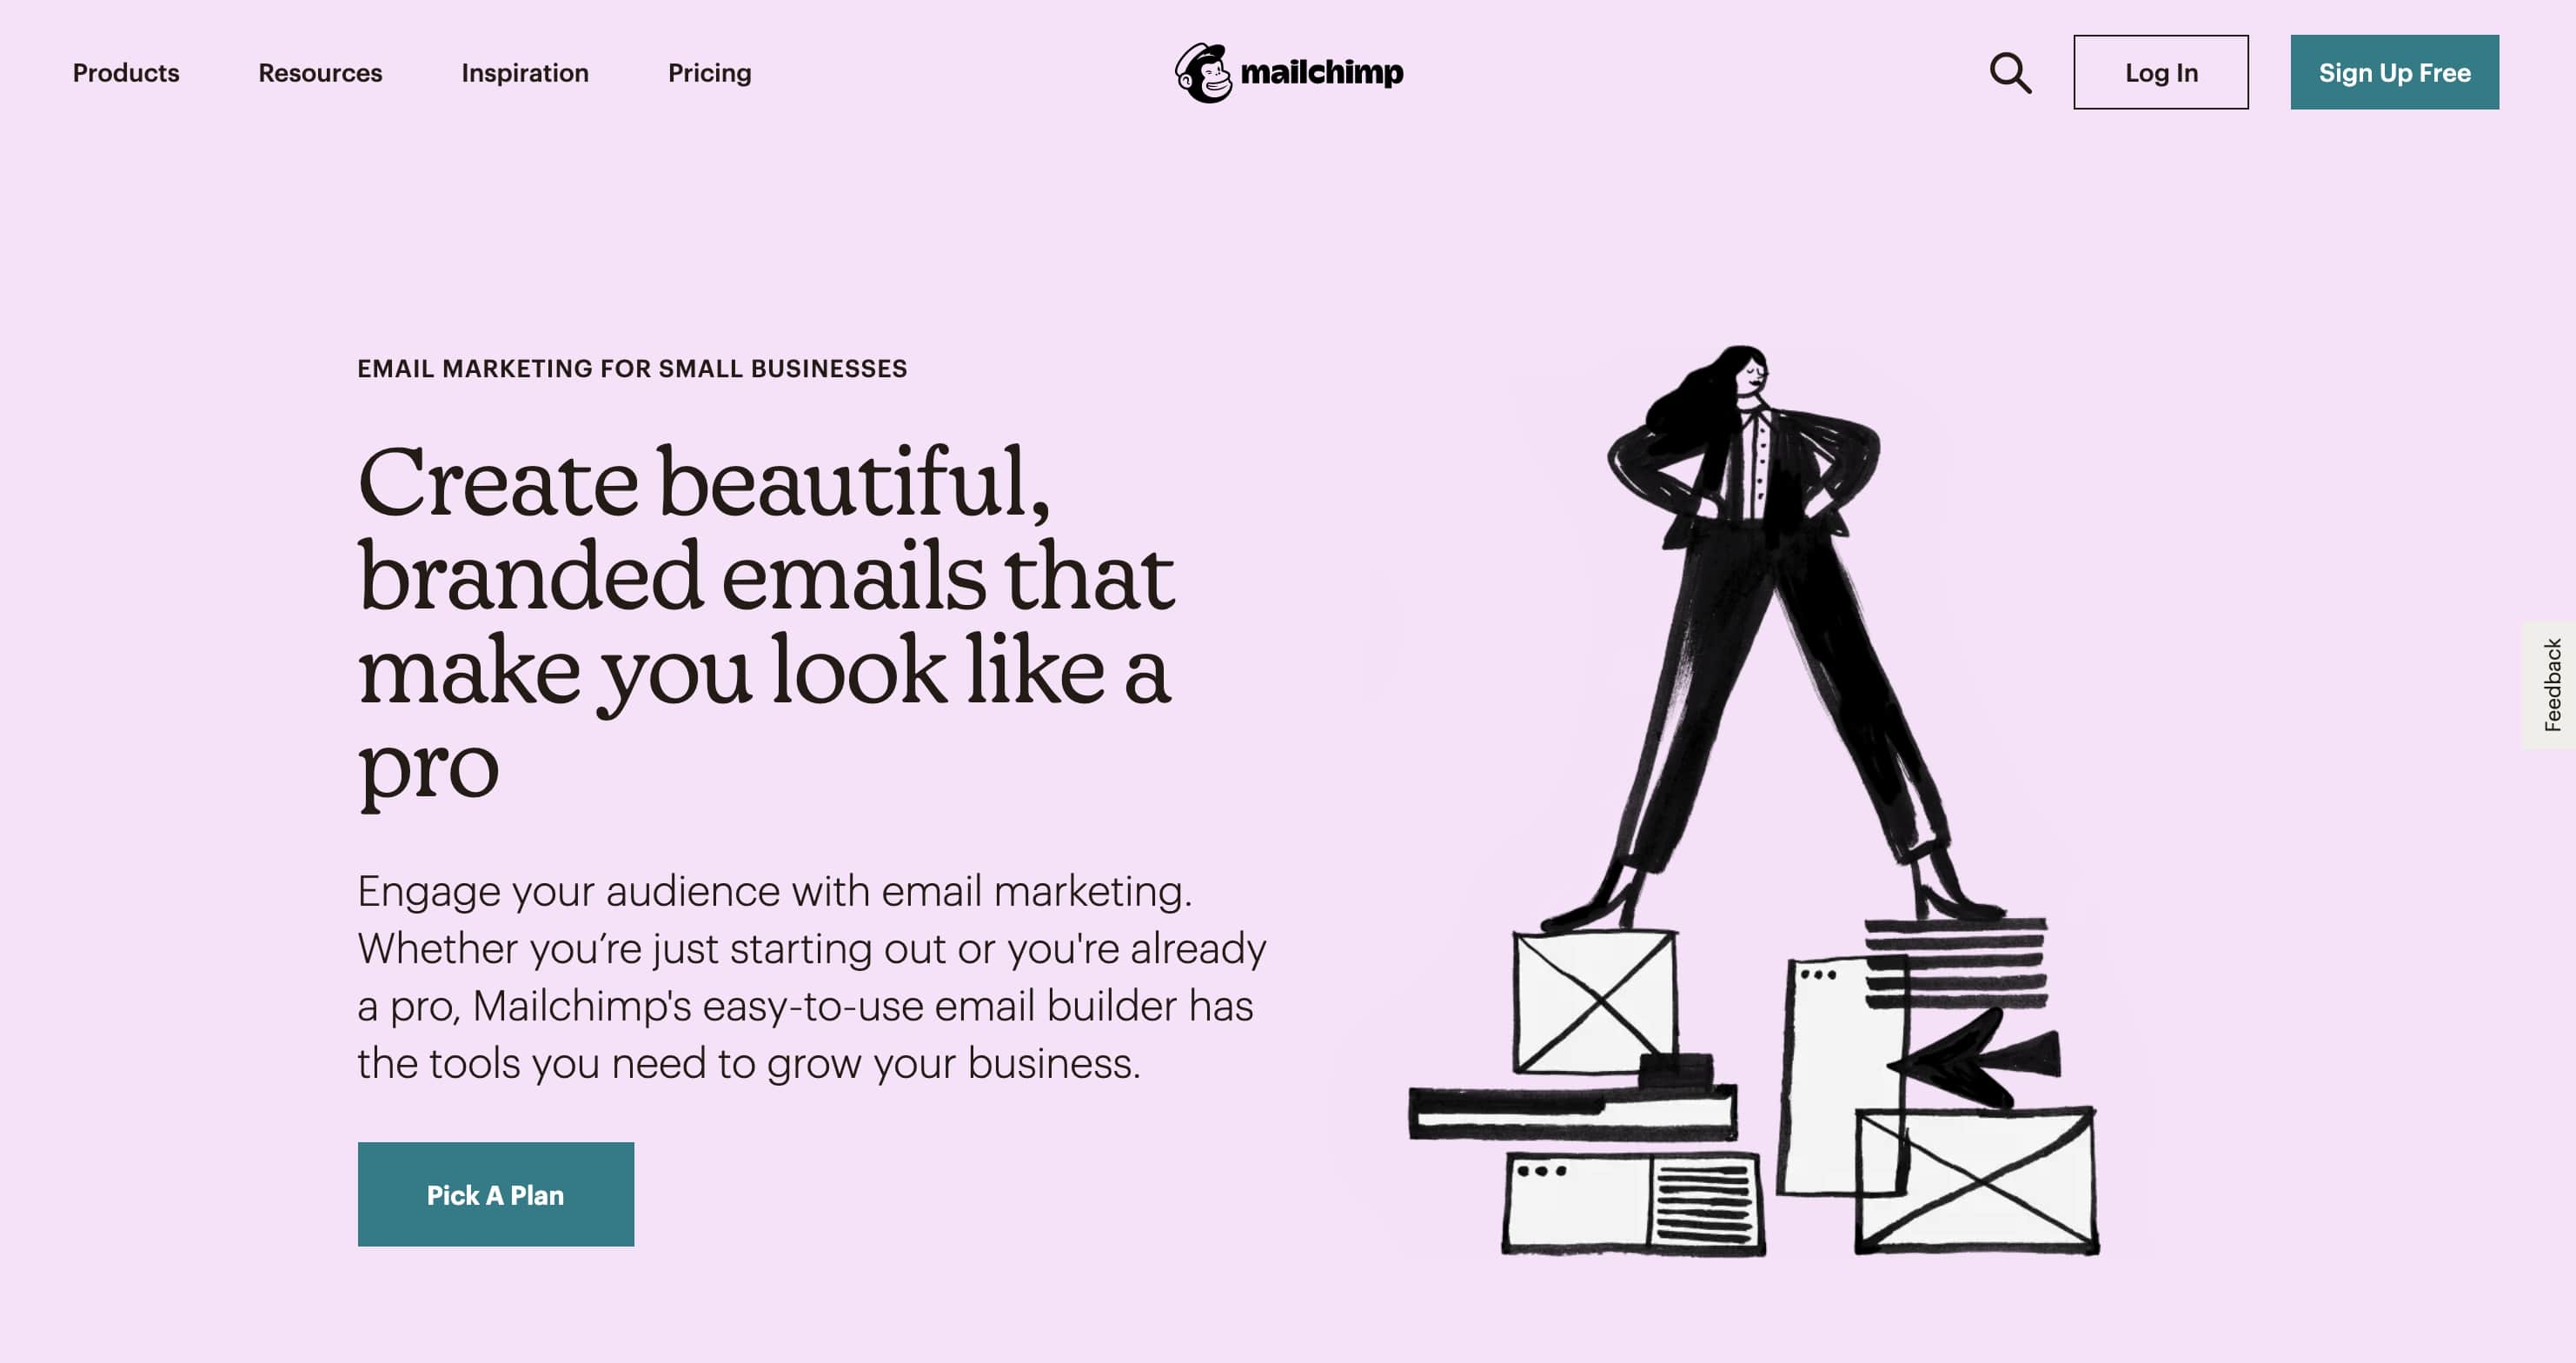 mailchimp email marketing use case page